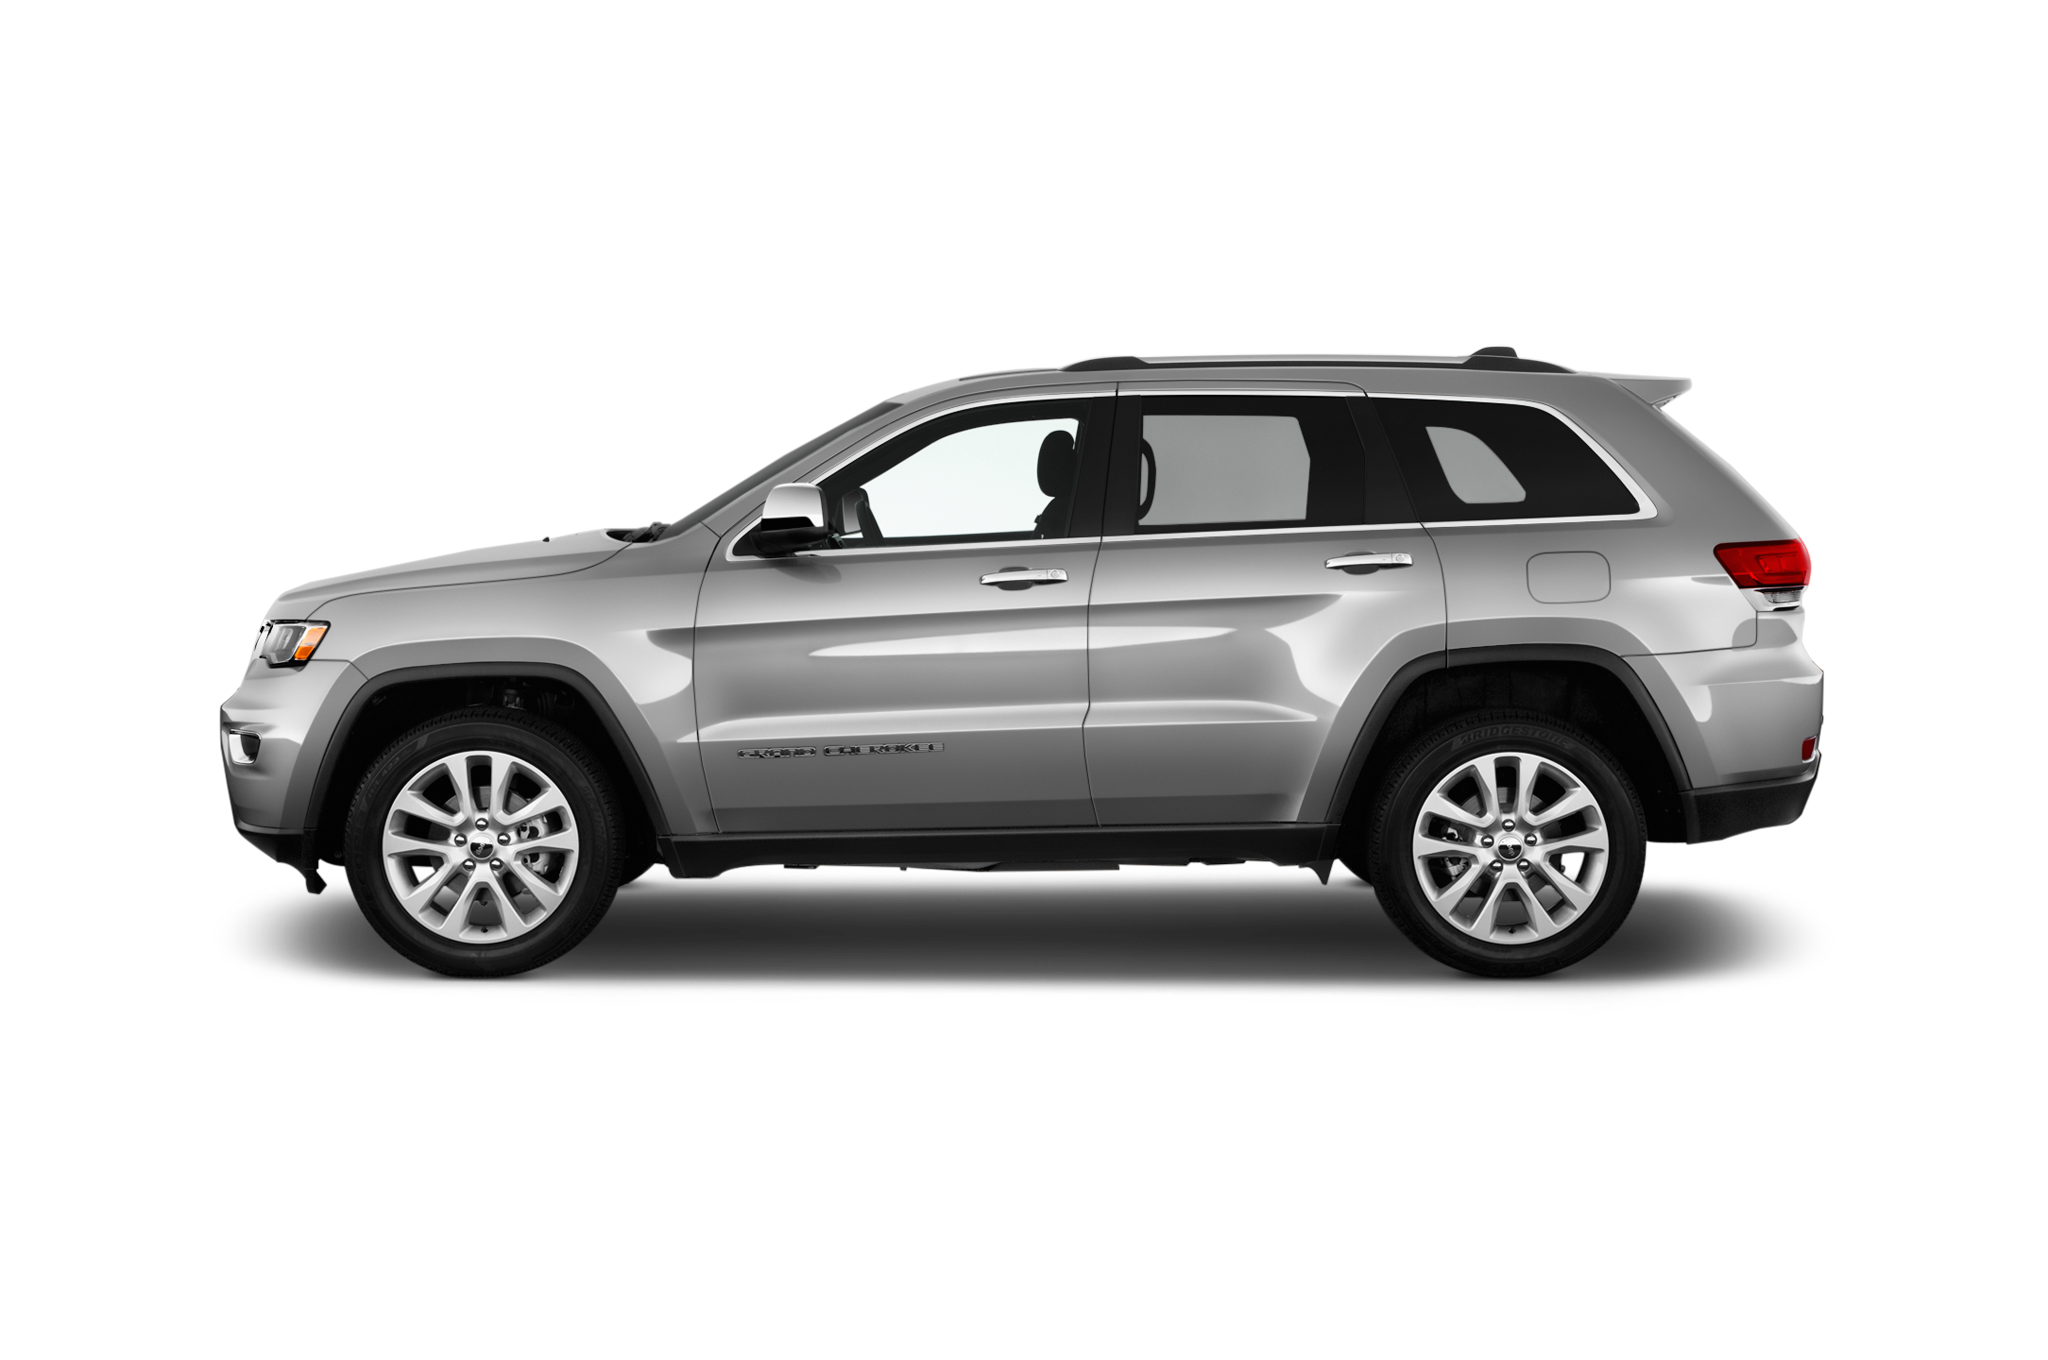 2018 jeep grand cherokee trackhawk pricing announced. Black Bedroom Furniture Sets. Home Design Ideas